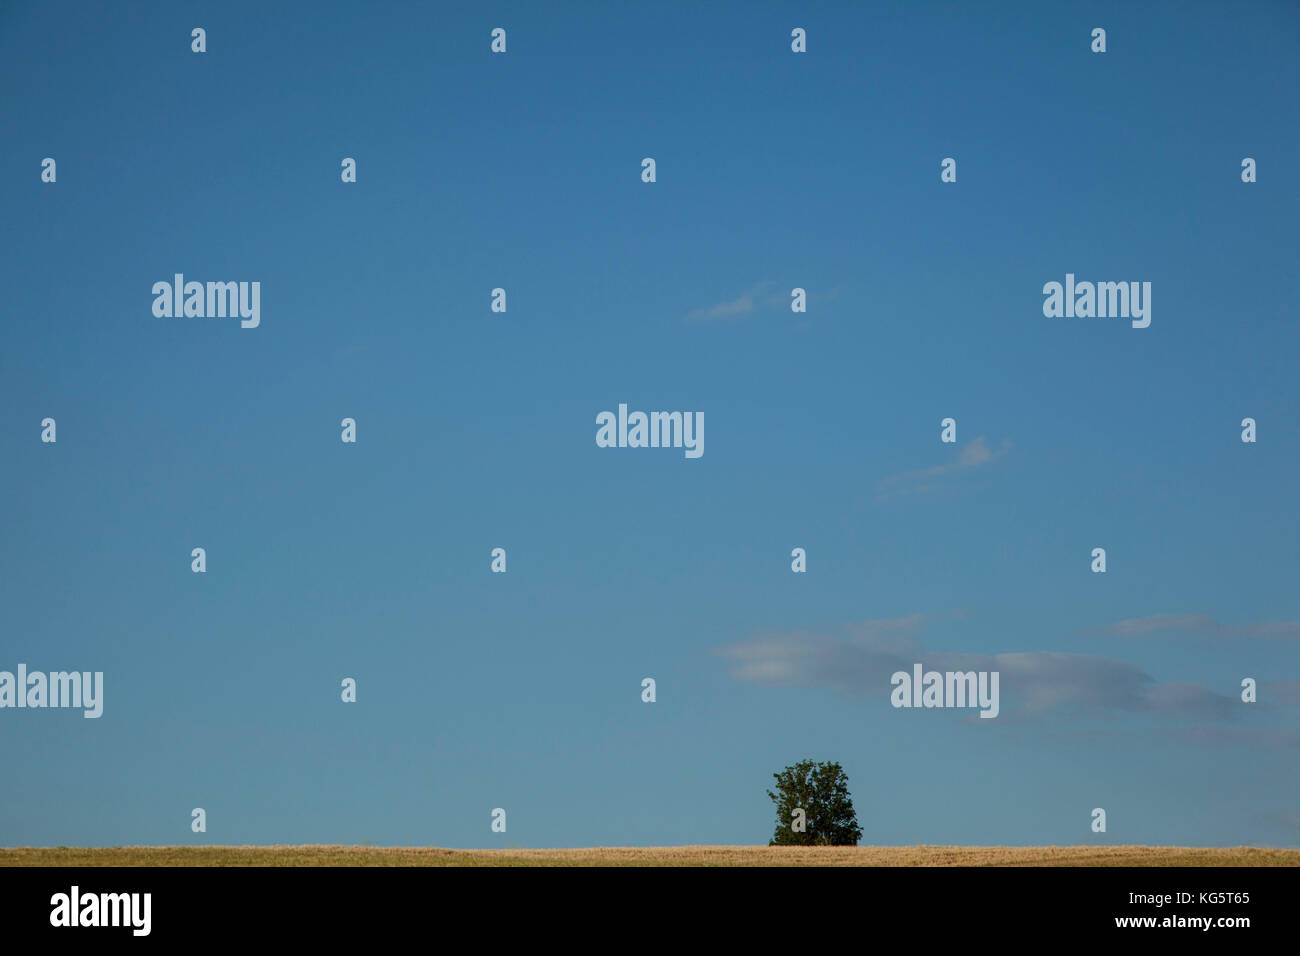 A loan tree grows out from the horizon on the Grand Union Canal in Leicester, England. - Stock Image